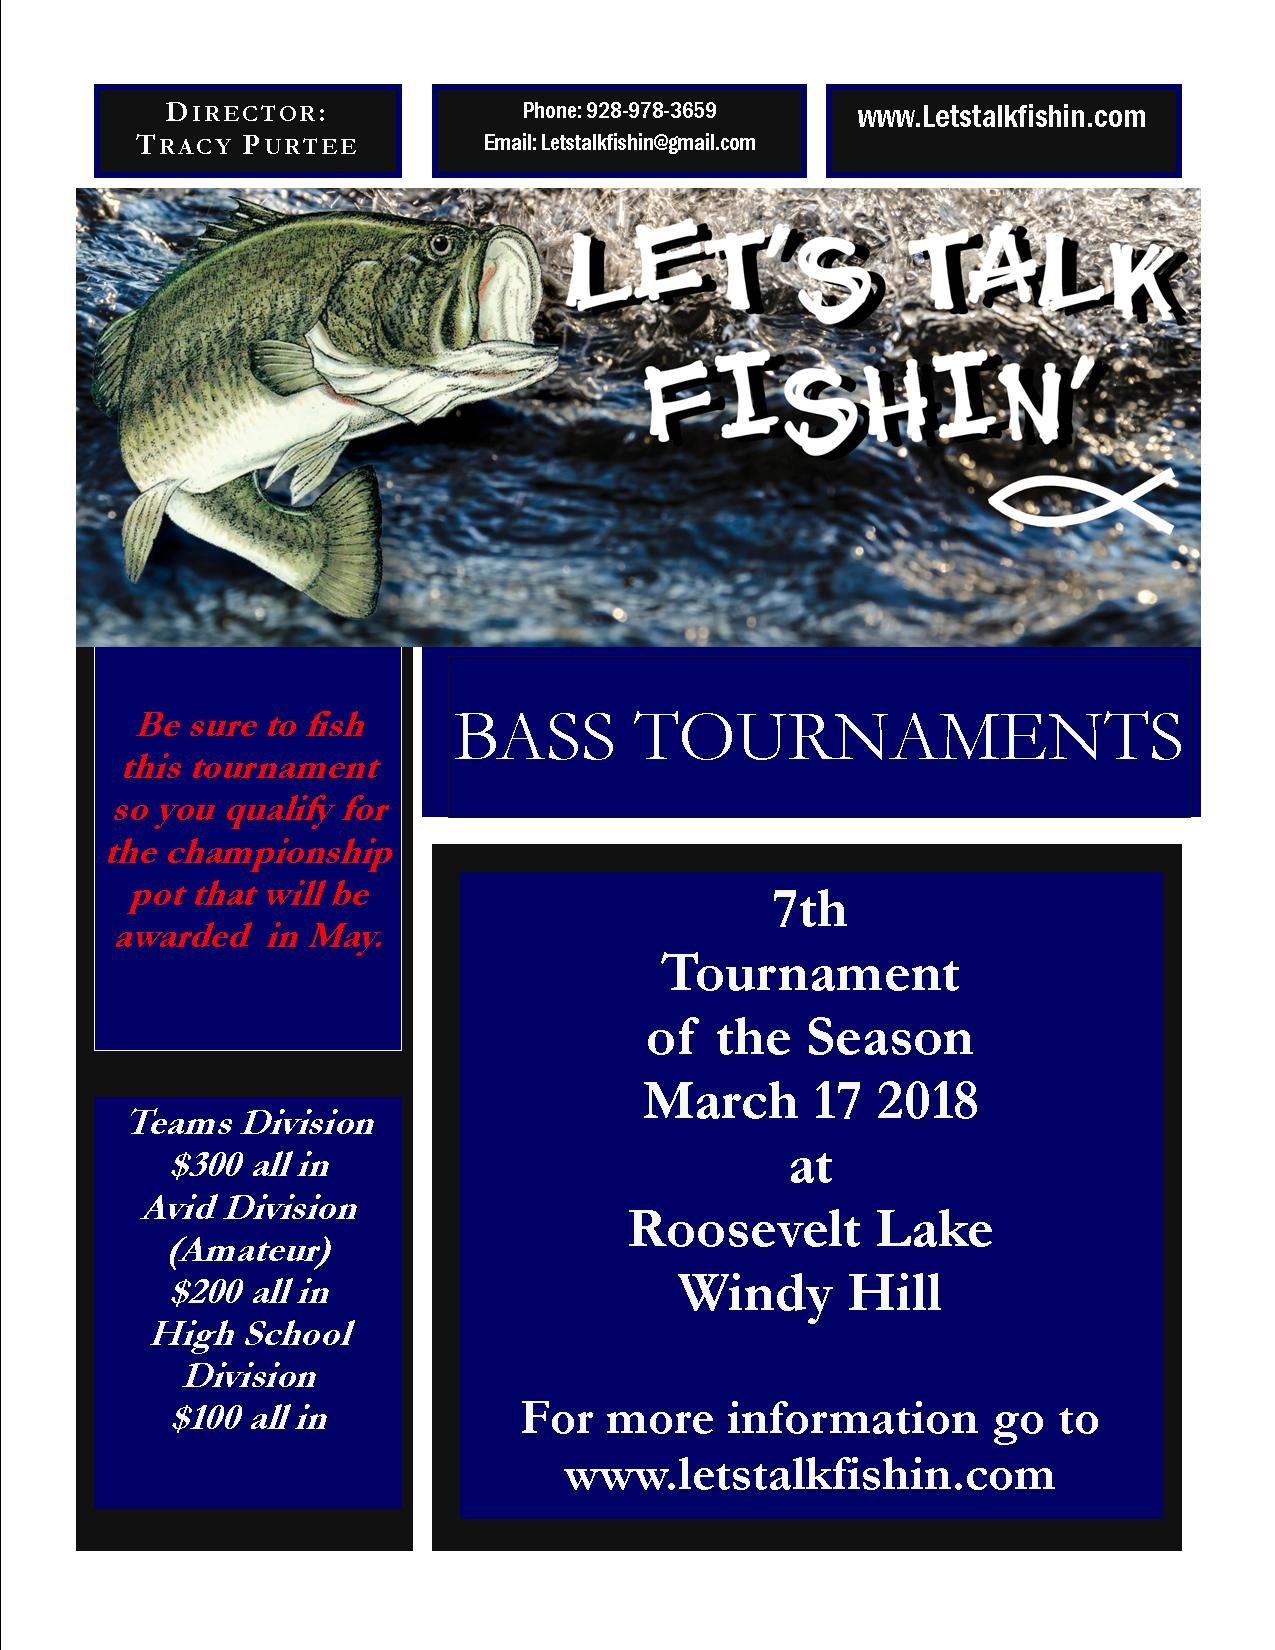 Click image for larger version  Name:7th Tournament.jpg Views:2068 Size:283.6 KB ID:96826